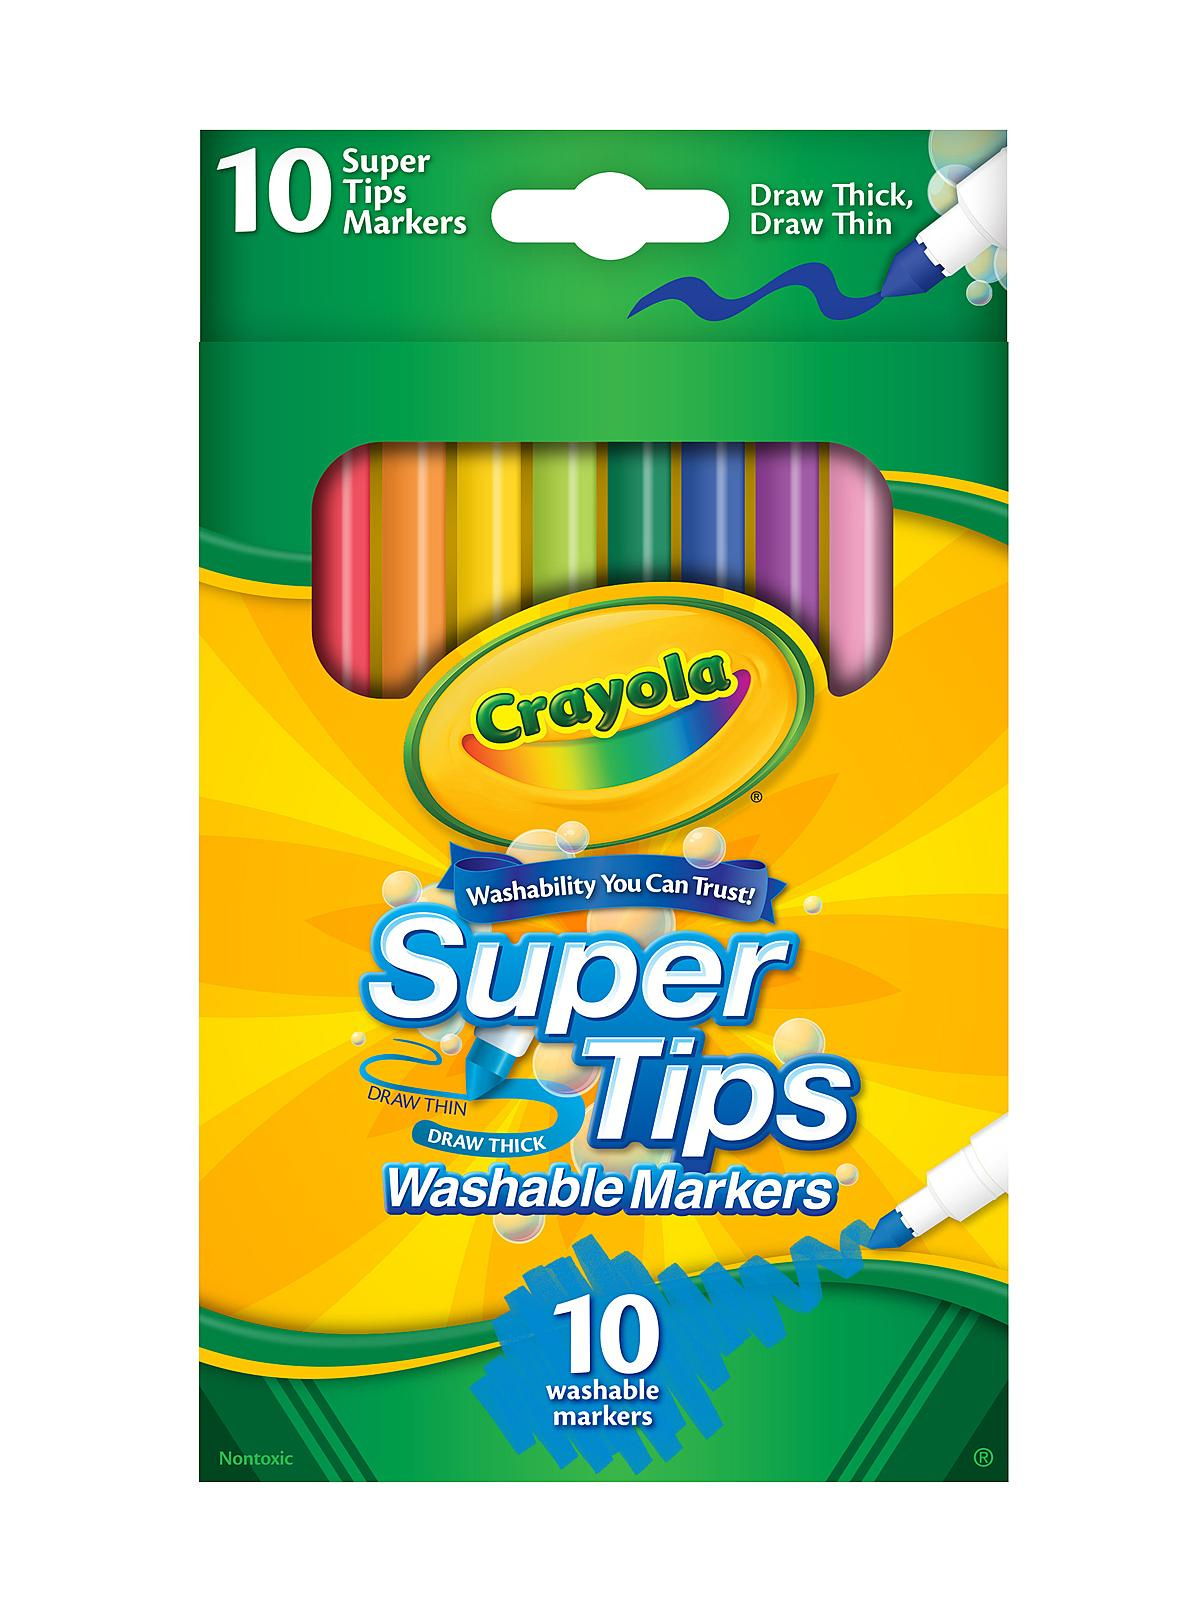 Crayola Super Tips Washable MarkersCrayola Marker Clip Art